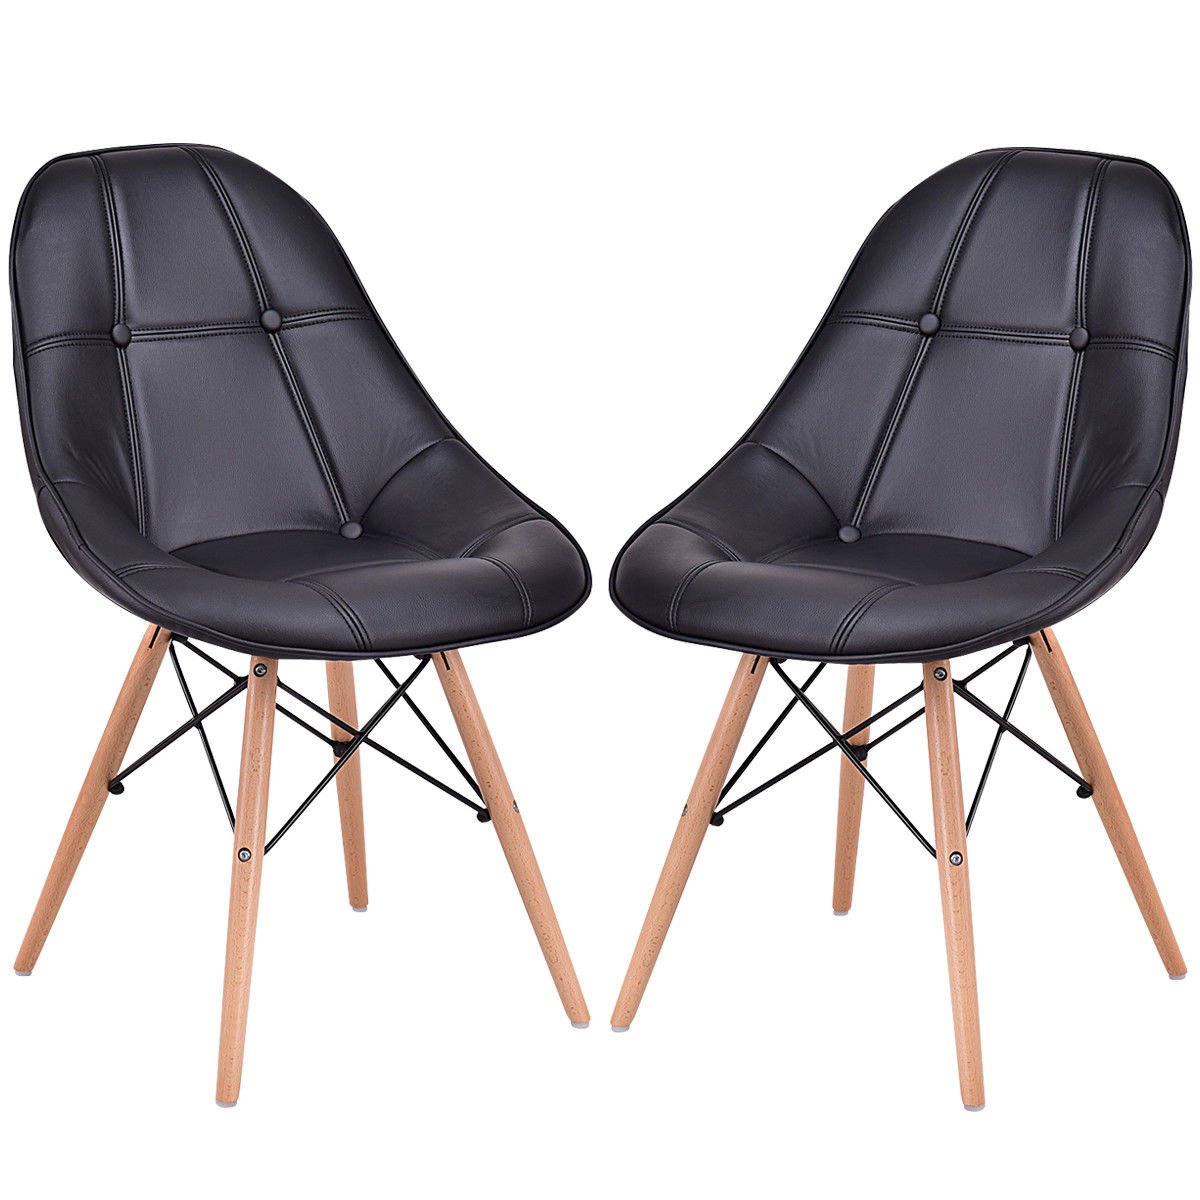 accent kitchen chair dining chair with pu leather seat solid wood swivel function Giantex Set of 2 Dining Side Chair Modern Armless PU Leather Seat with Wood Legs Black Leisure Dining Chairs HW56505BK